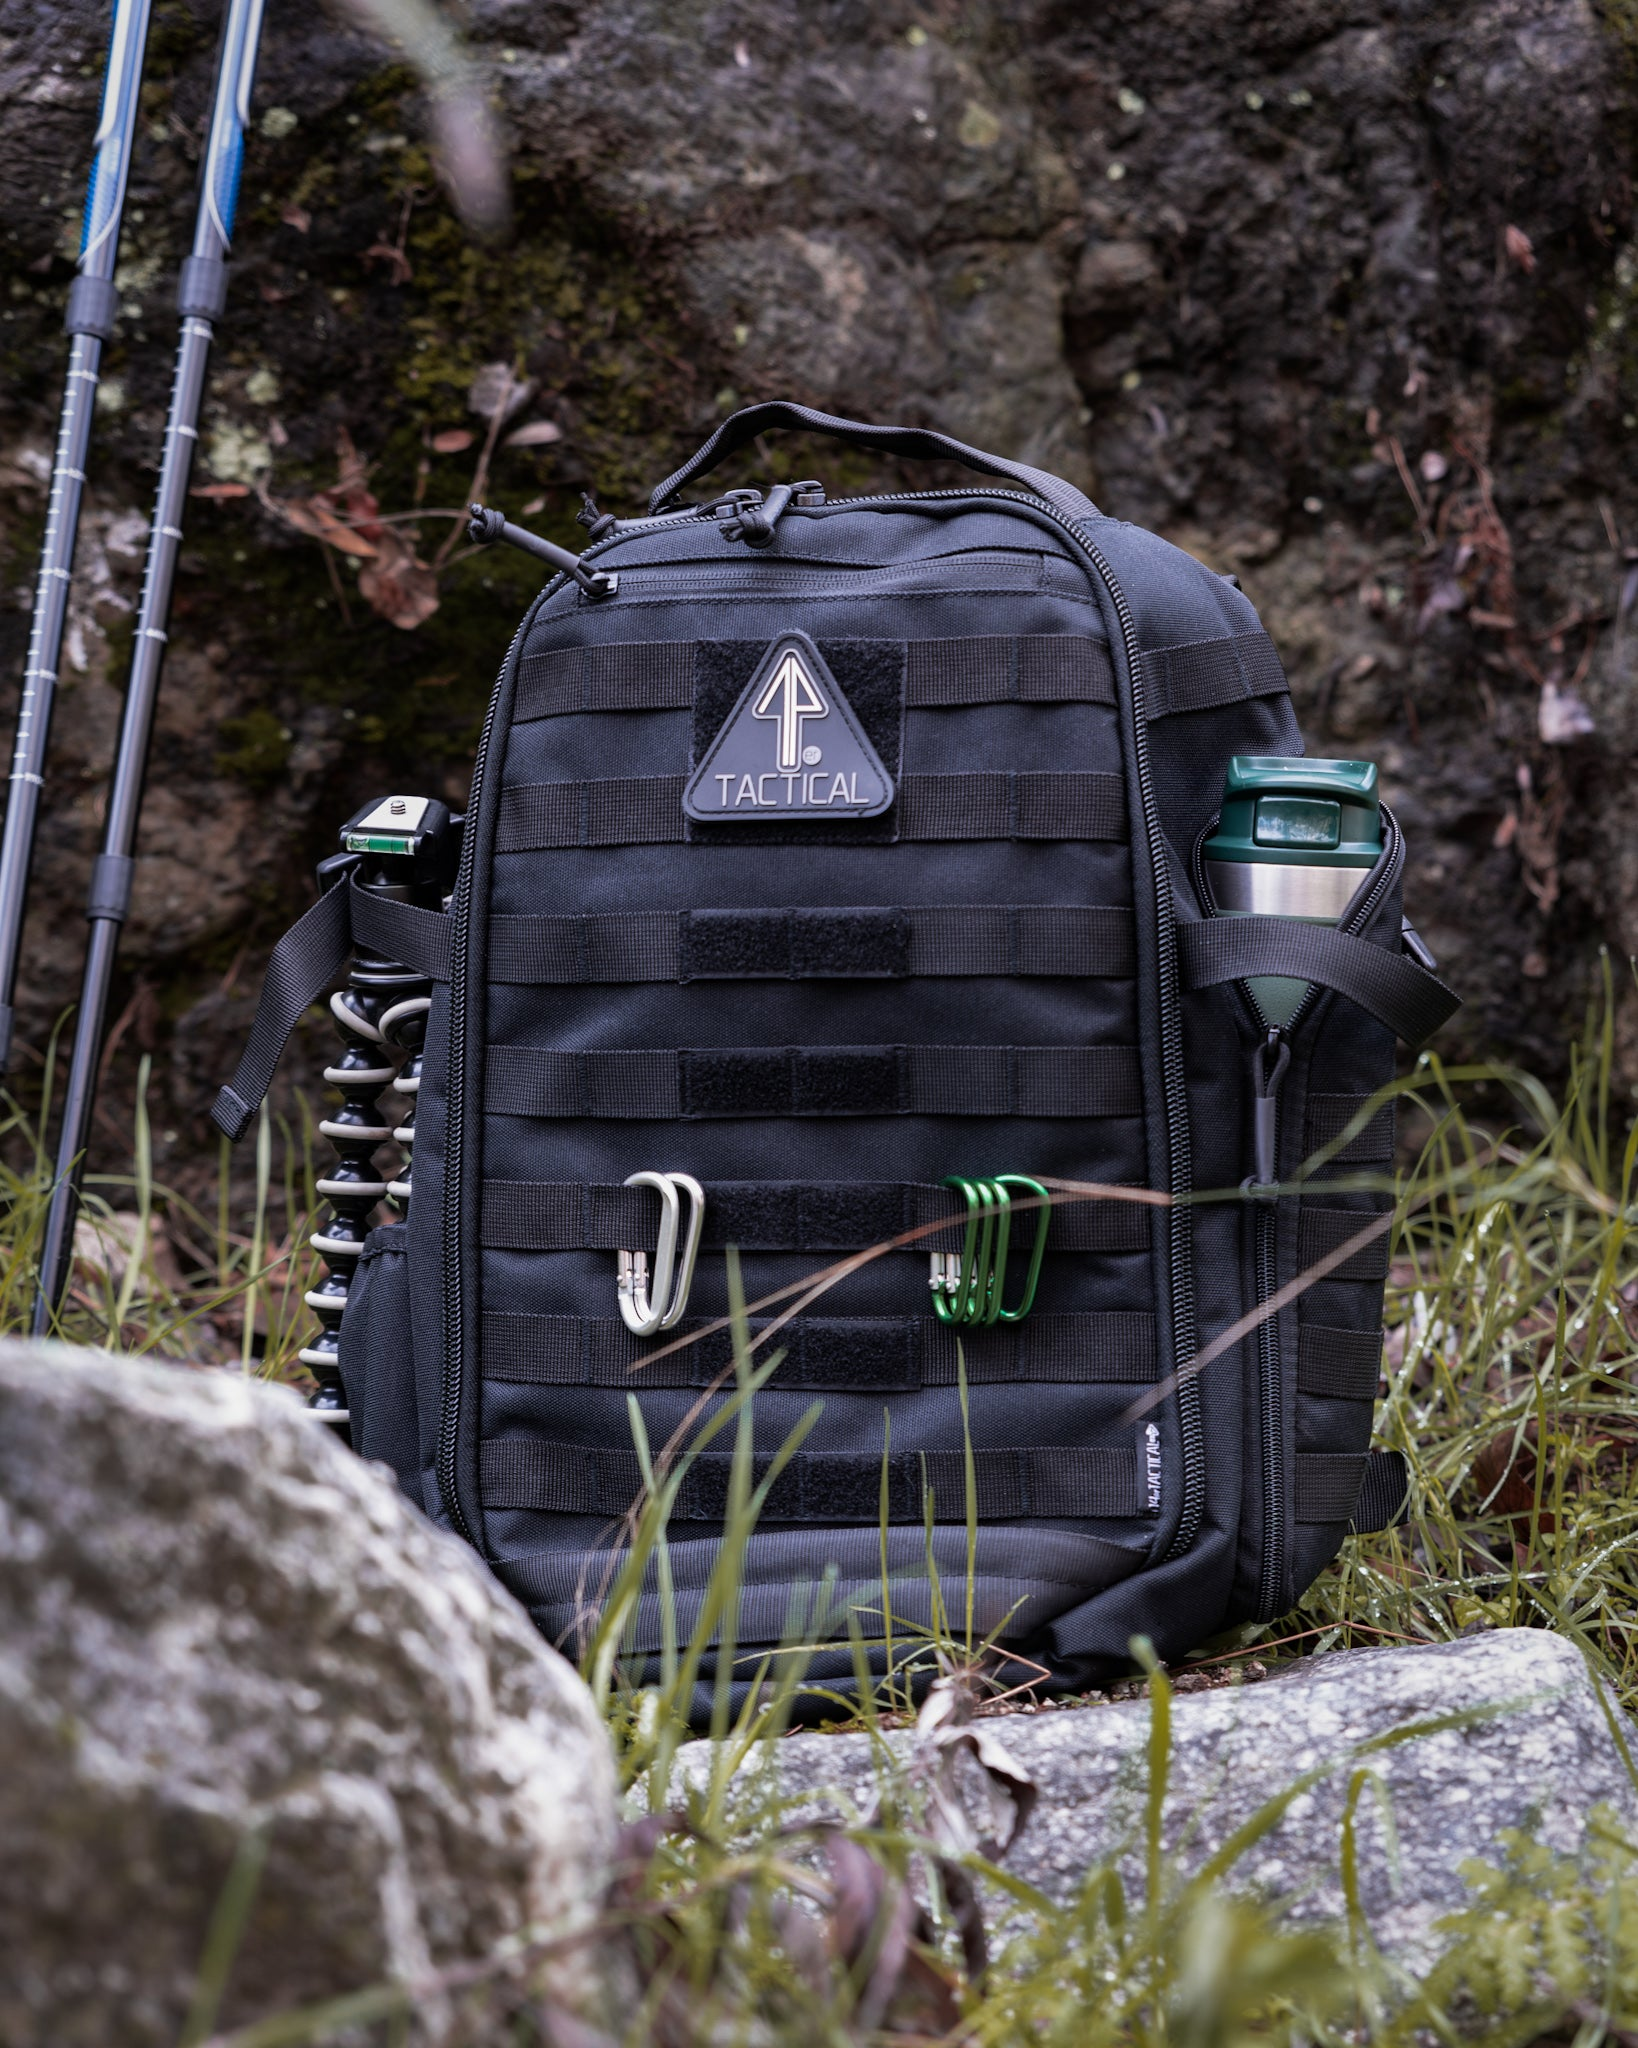 A 14er Tactical Black Backpack is displayed used as a bug out bag.